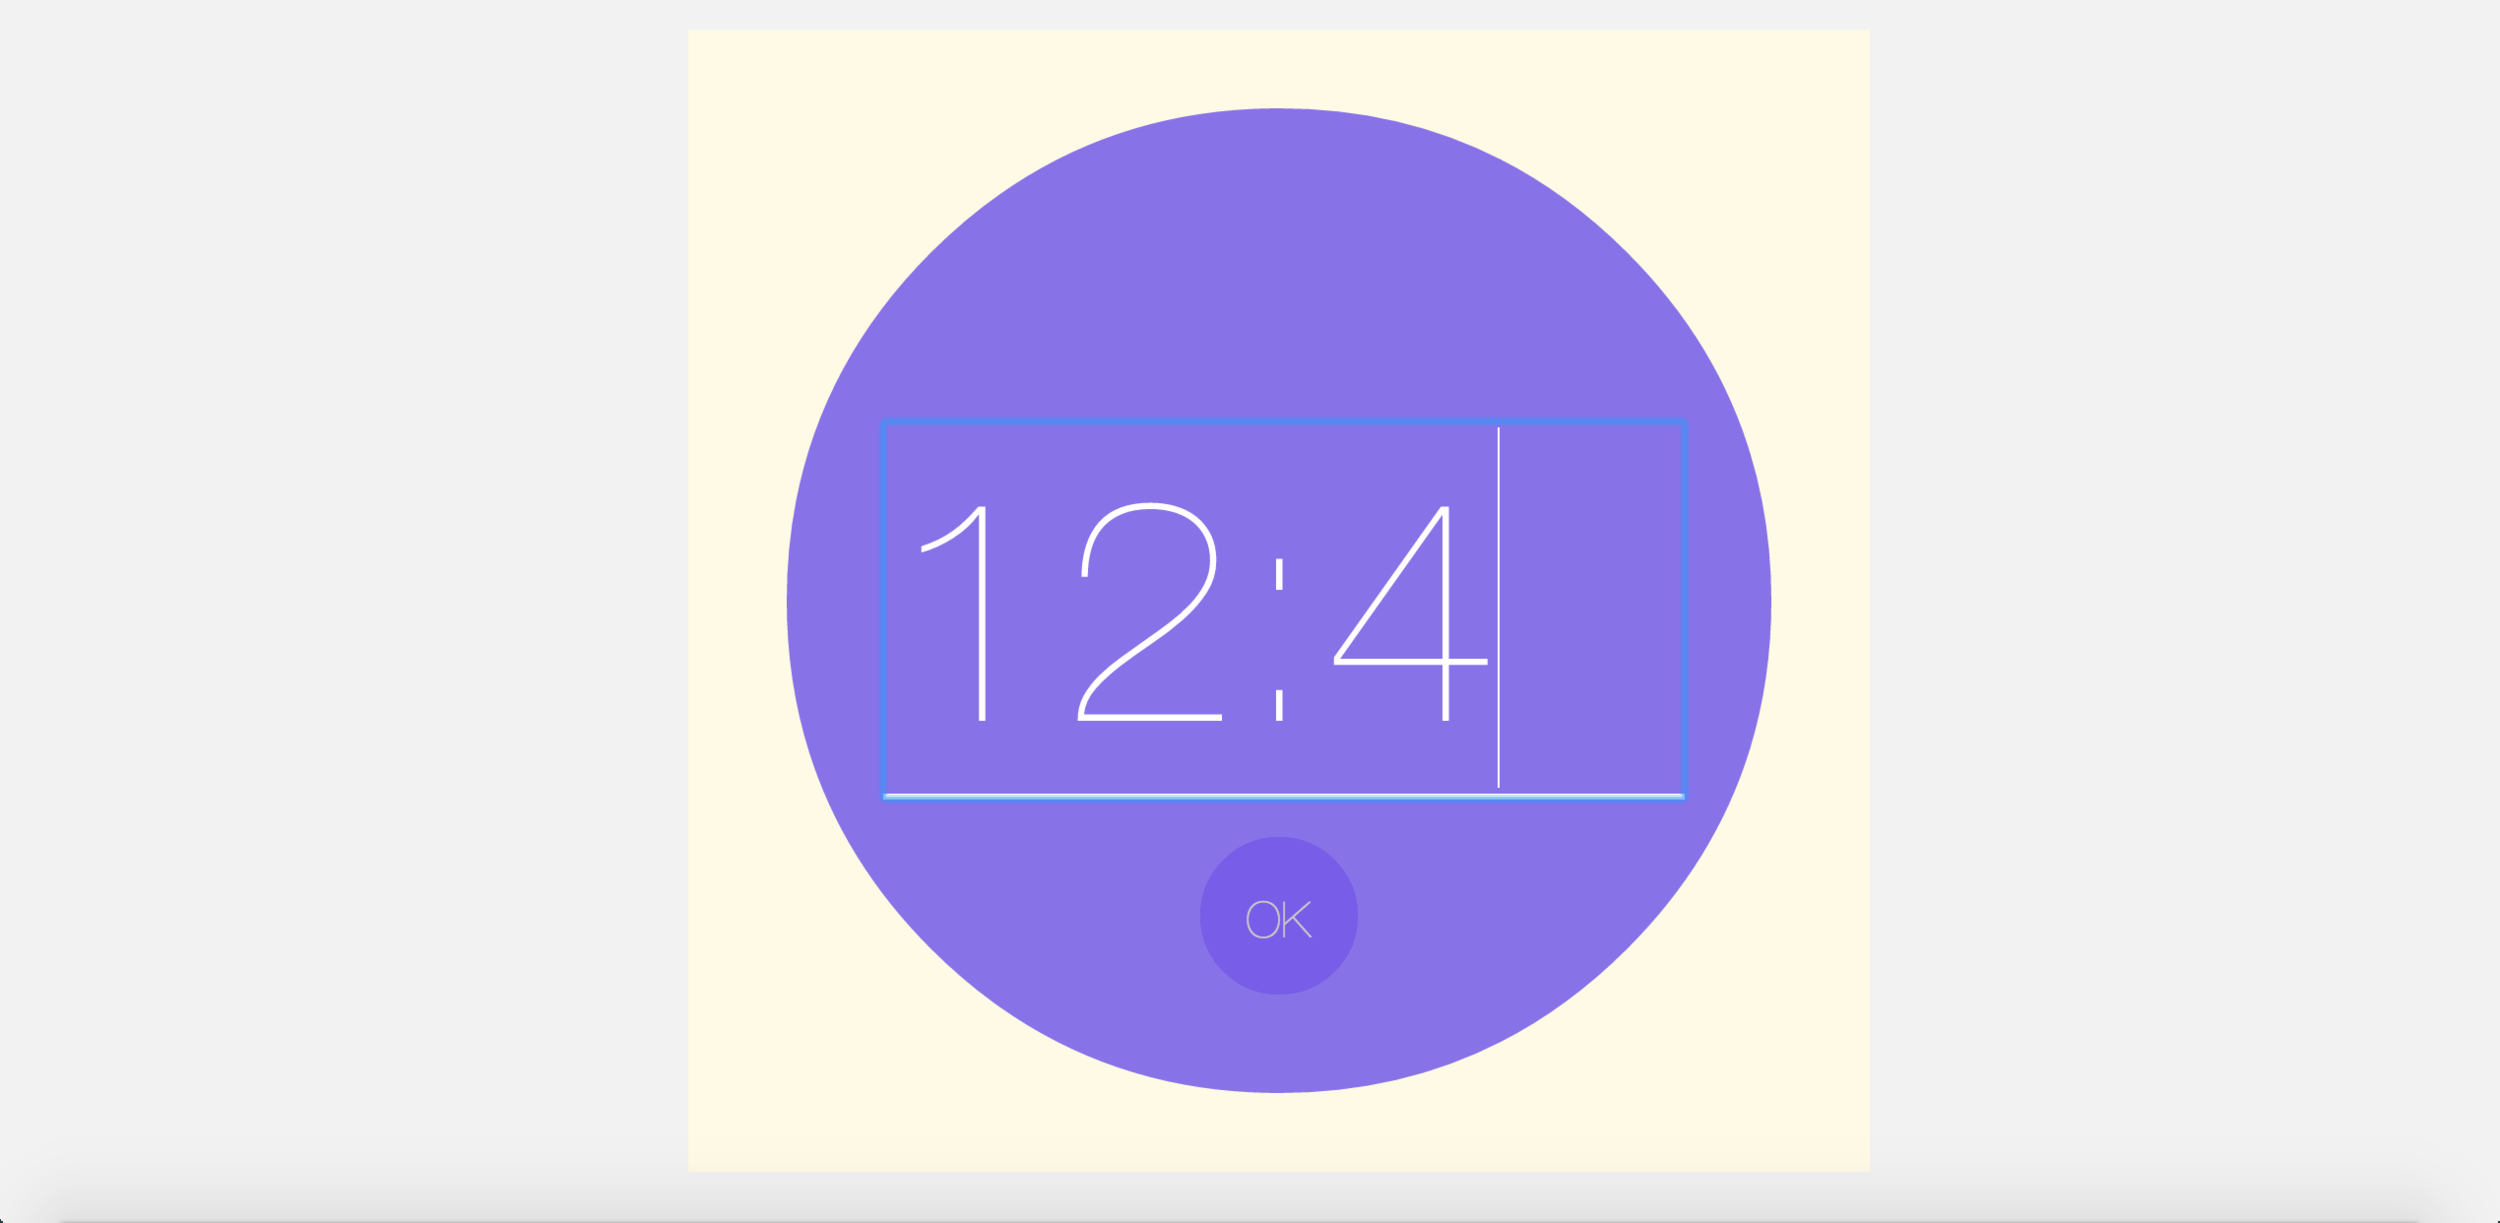 After inputting alarm time(12:43), people can hit OK to confirm.